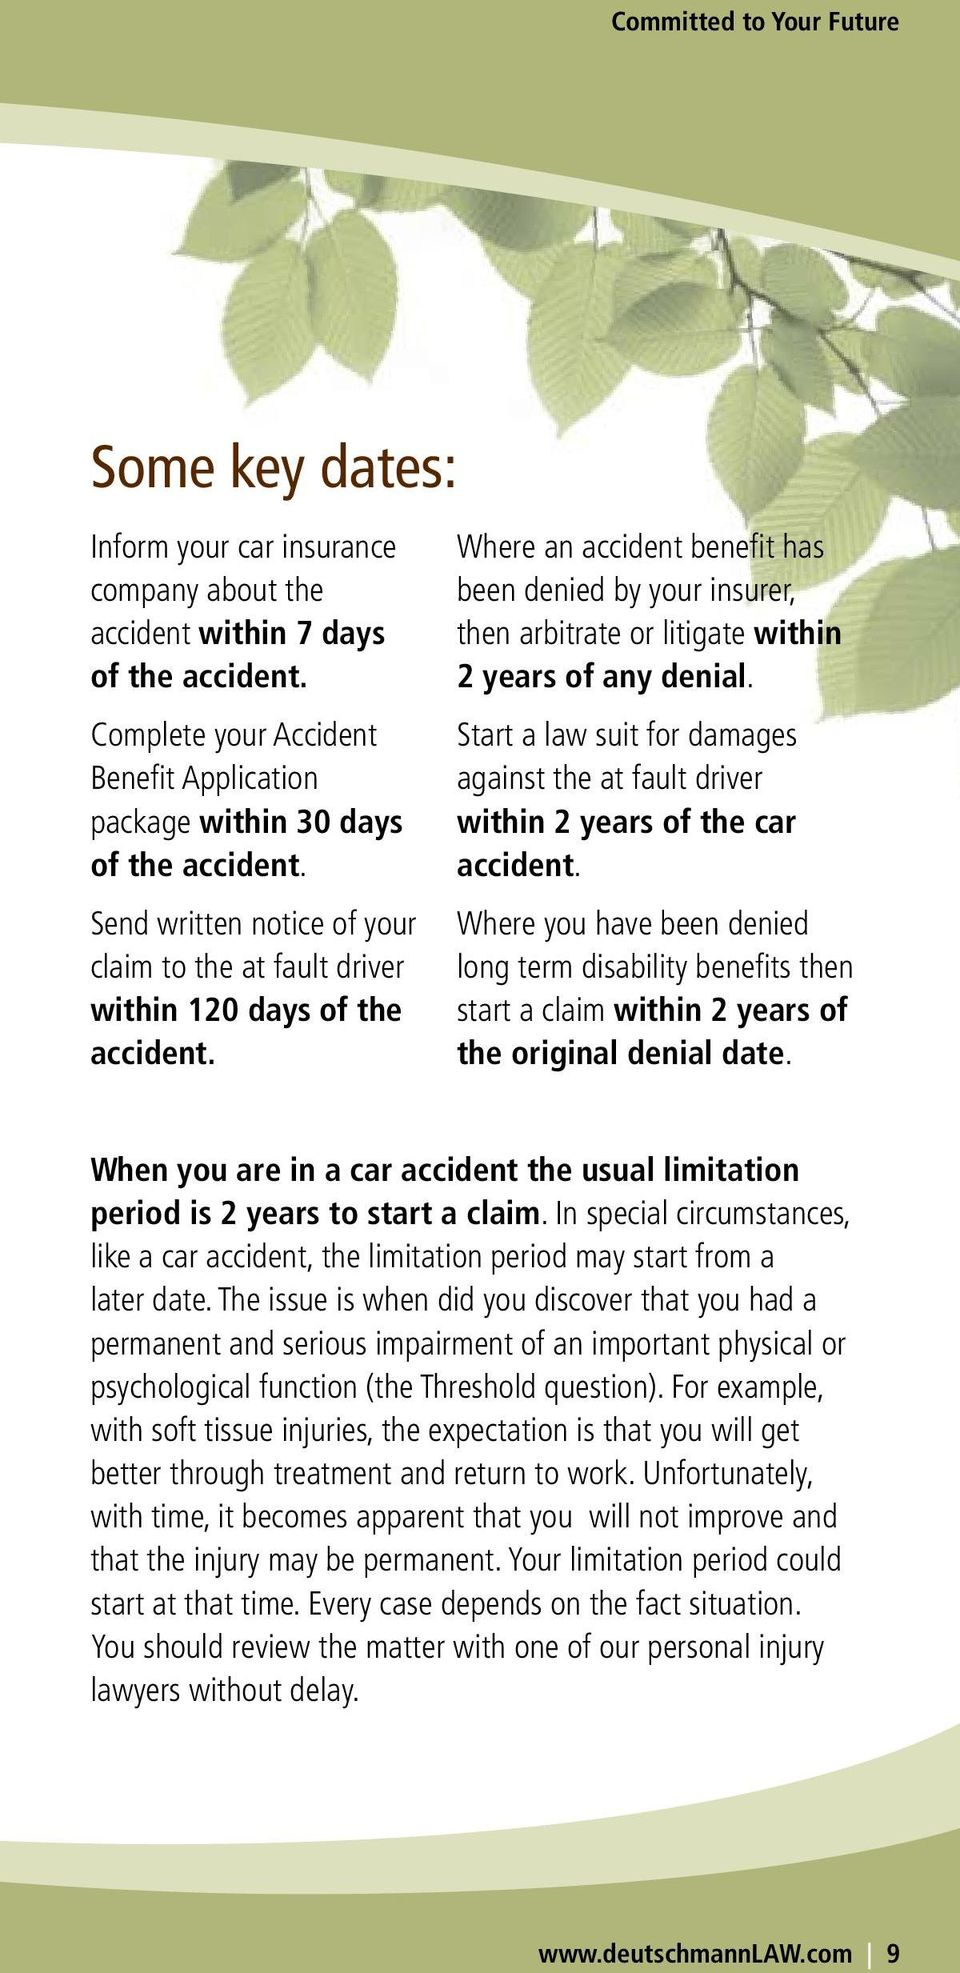 Where an accident benefit has been denied by your insurer, then arbitrate or litigate within 2 years of any denial.